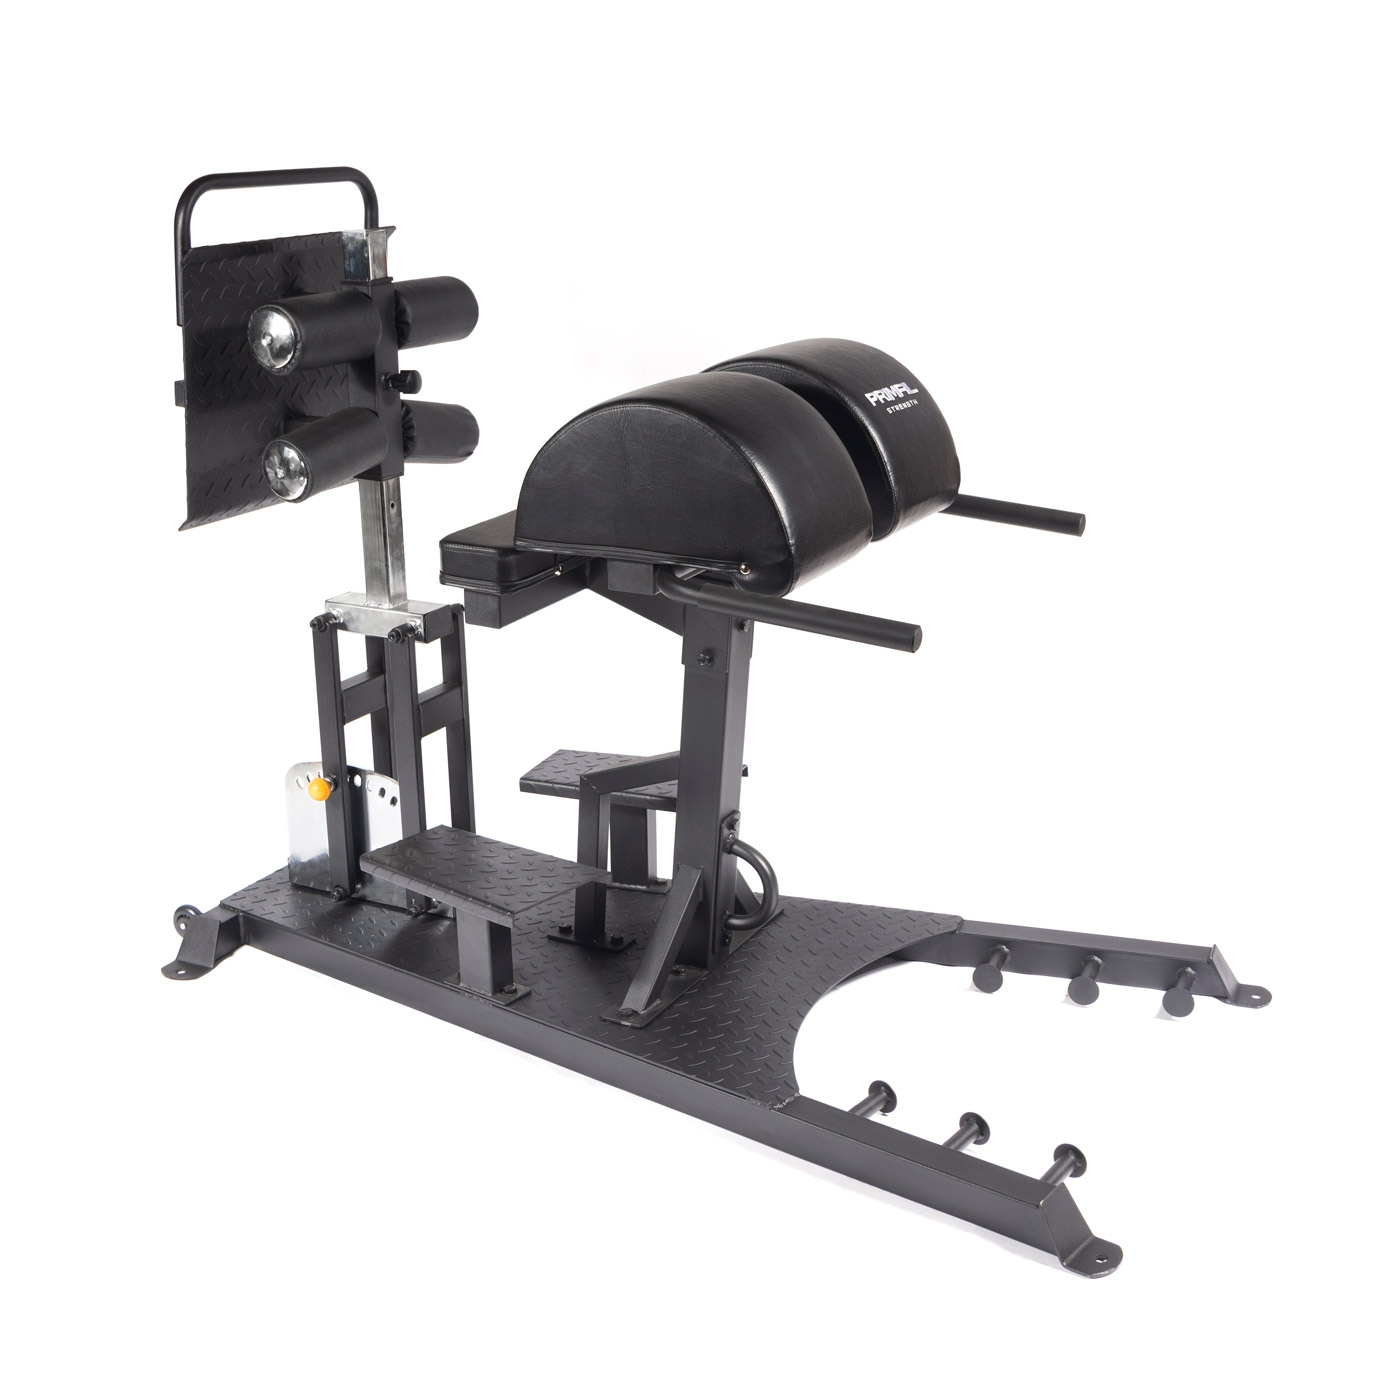 Monster Series Glute Ham Developer GHD